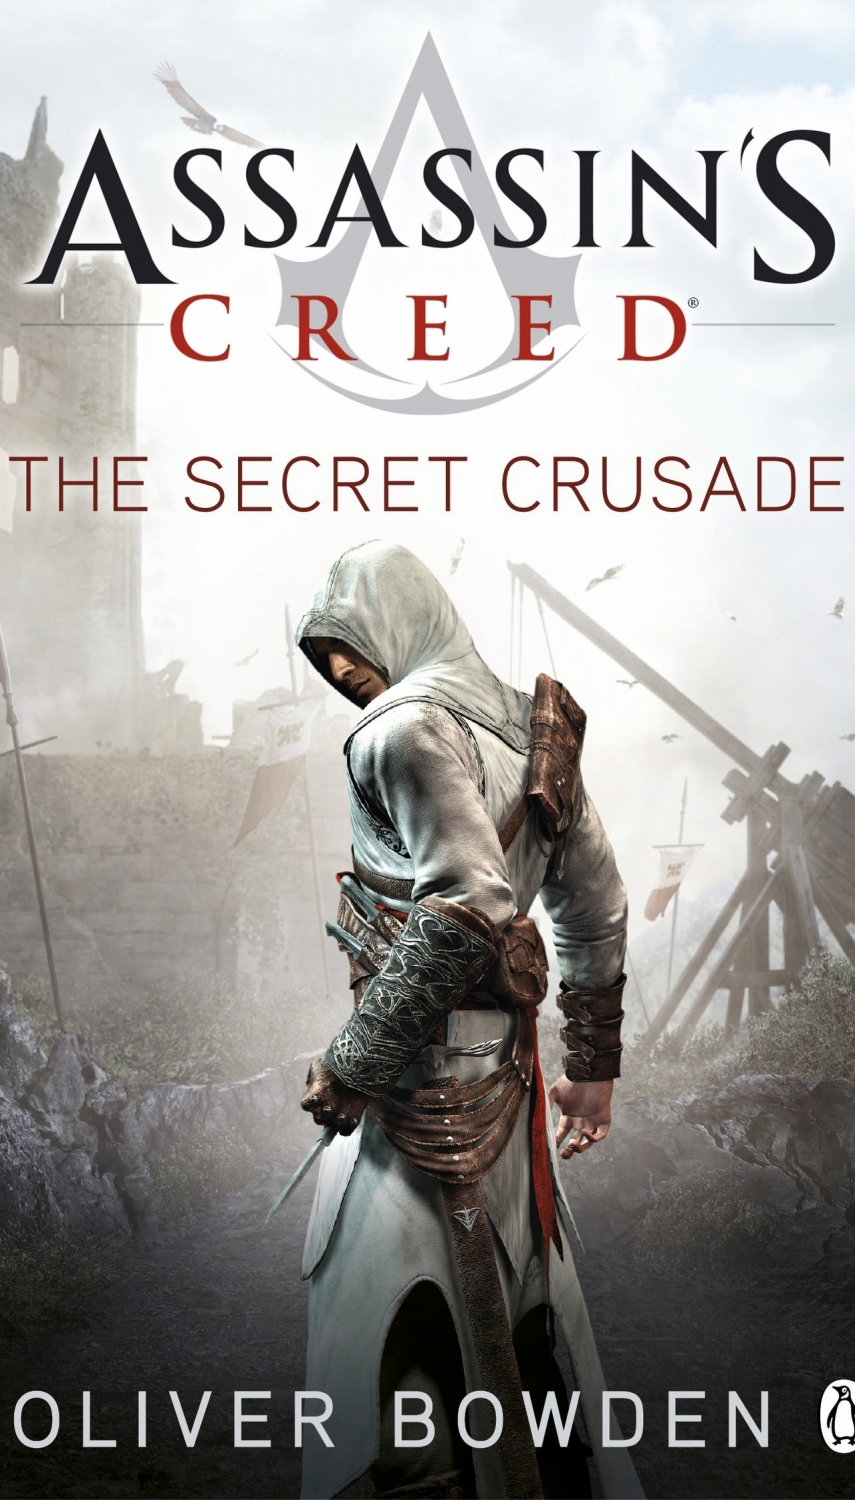 THE SECRET CRUSADE